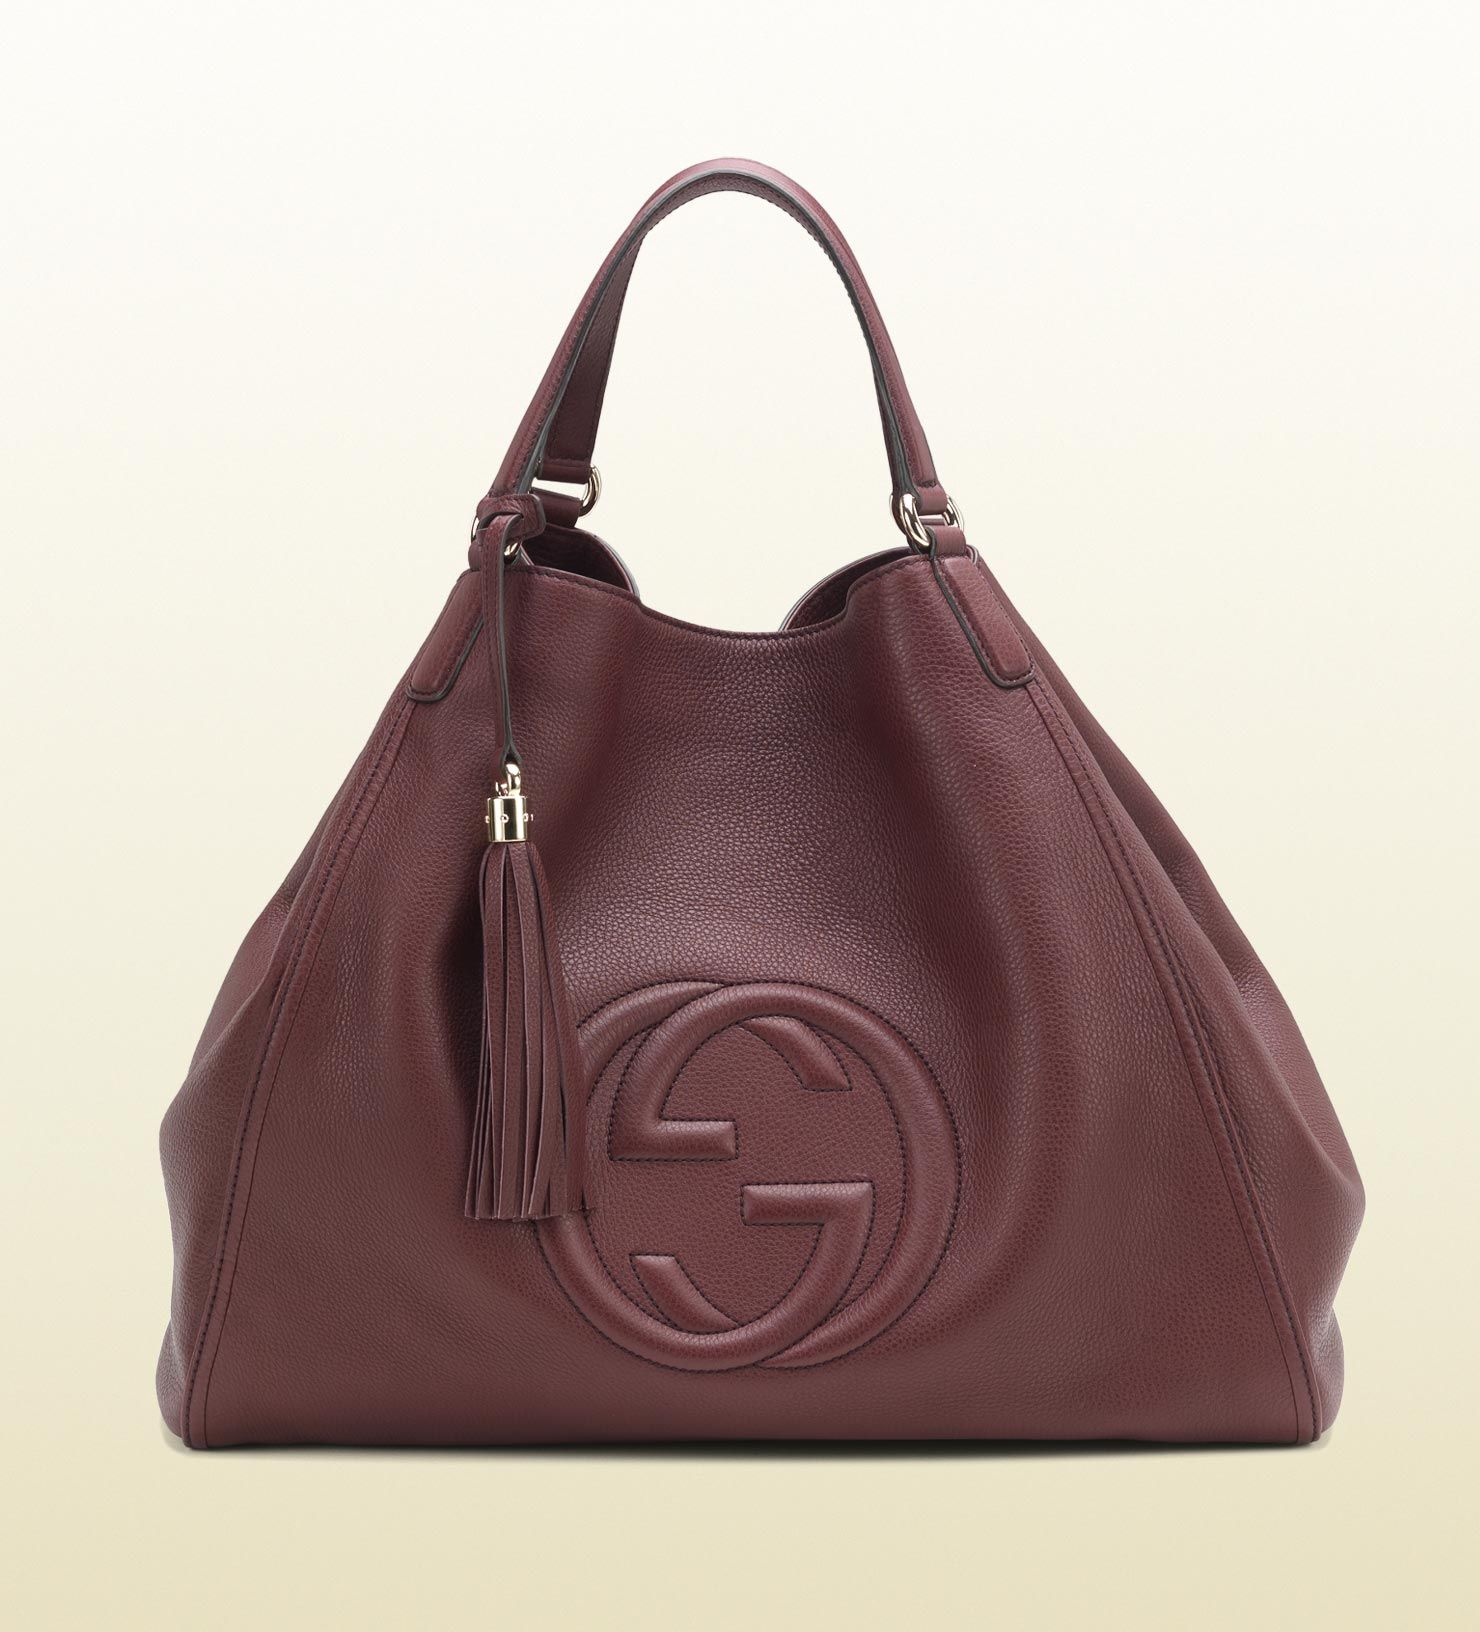 aa8edcbdfe7 Gucci Soho bordeaux leather shoulder bag!!!